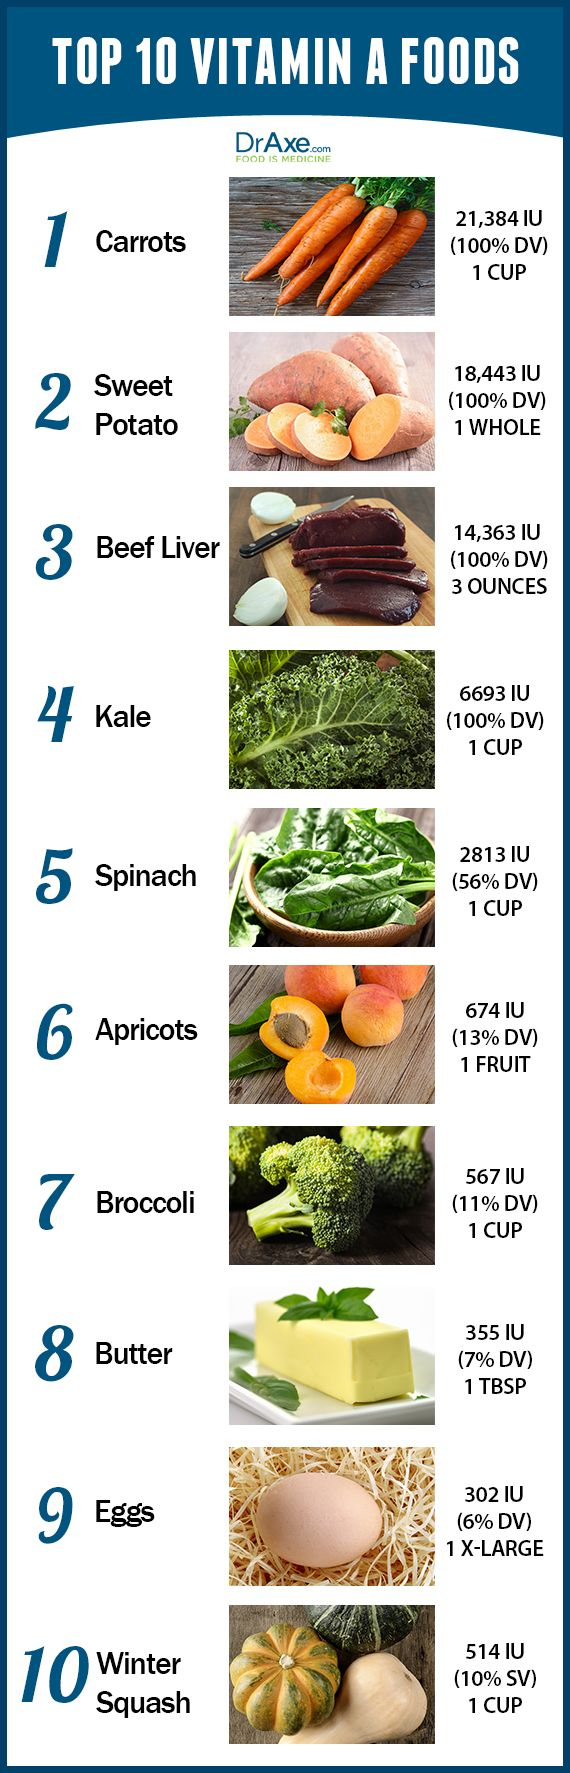 Top 10 Vitamin A Foods List  http://www.draxe.com #health #holistic #natural